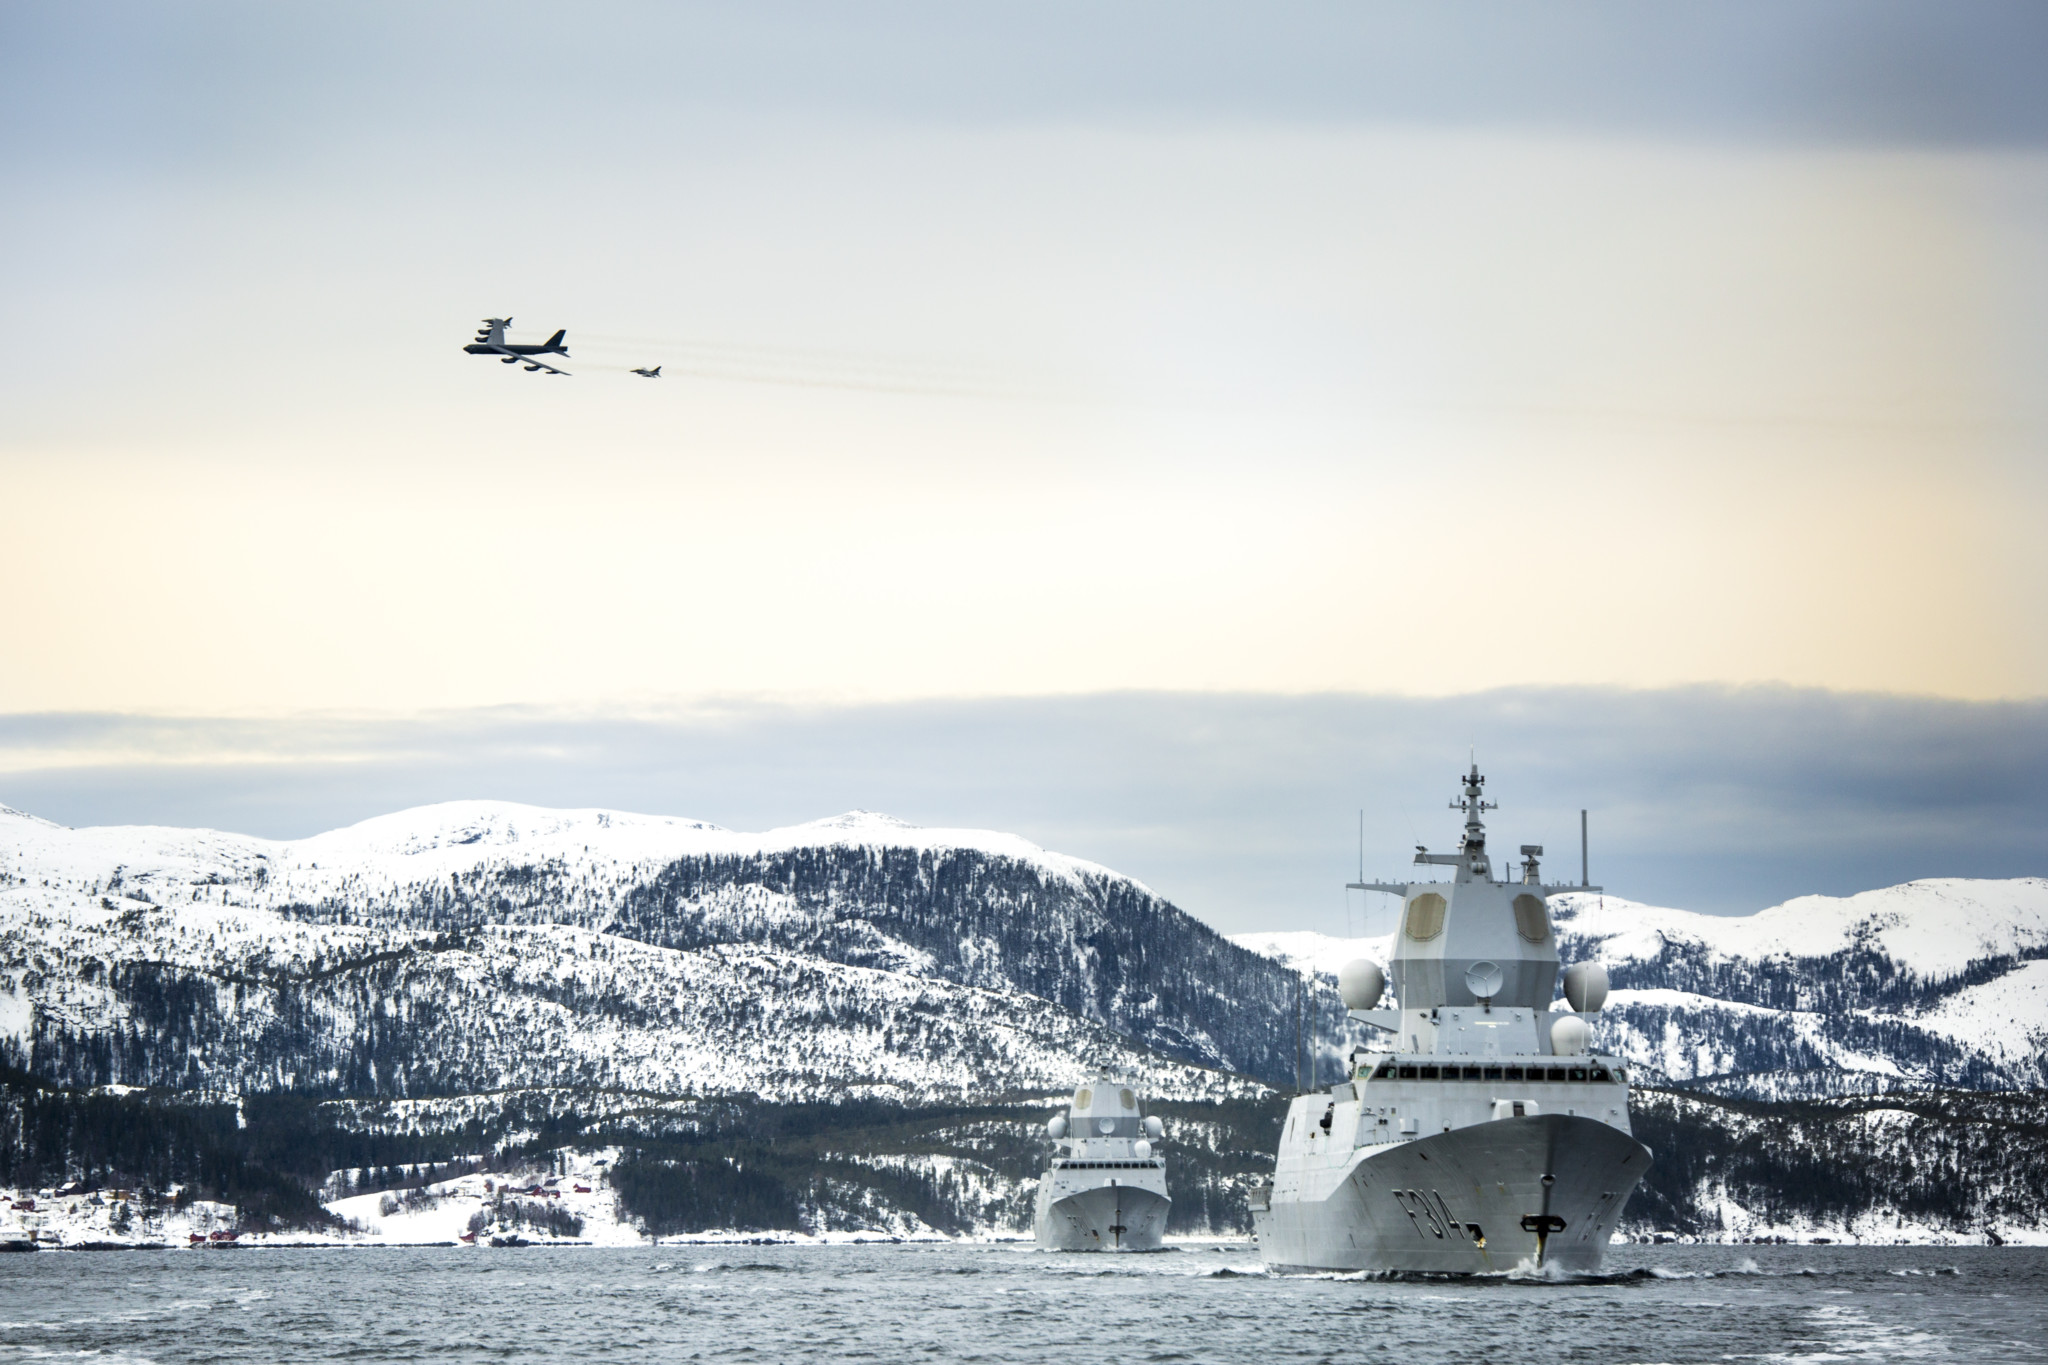 B-52 bombefly og F16 jagerfly i overflygning over KNM F314 KNM Thor Heyerdahl i front, fulgt av KNM F311 Roald Amundsen, på DV-dag utenfor Namsos, under øvelse Cold Response 2016. // B-52 Strategic Bomber and F16 Fighting Falcons' flyby over KNM F314 Thor Heyerdahl in front, followed by KNM F311 Roald Amundsen, attending DV-day nearby Namsos, during exercise Cold Response 2016.